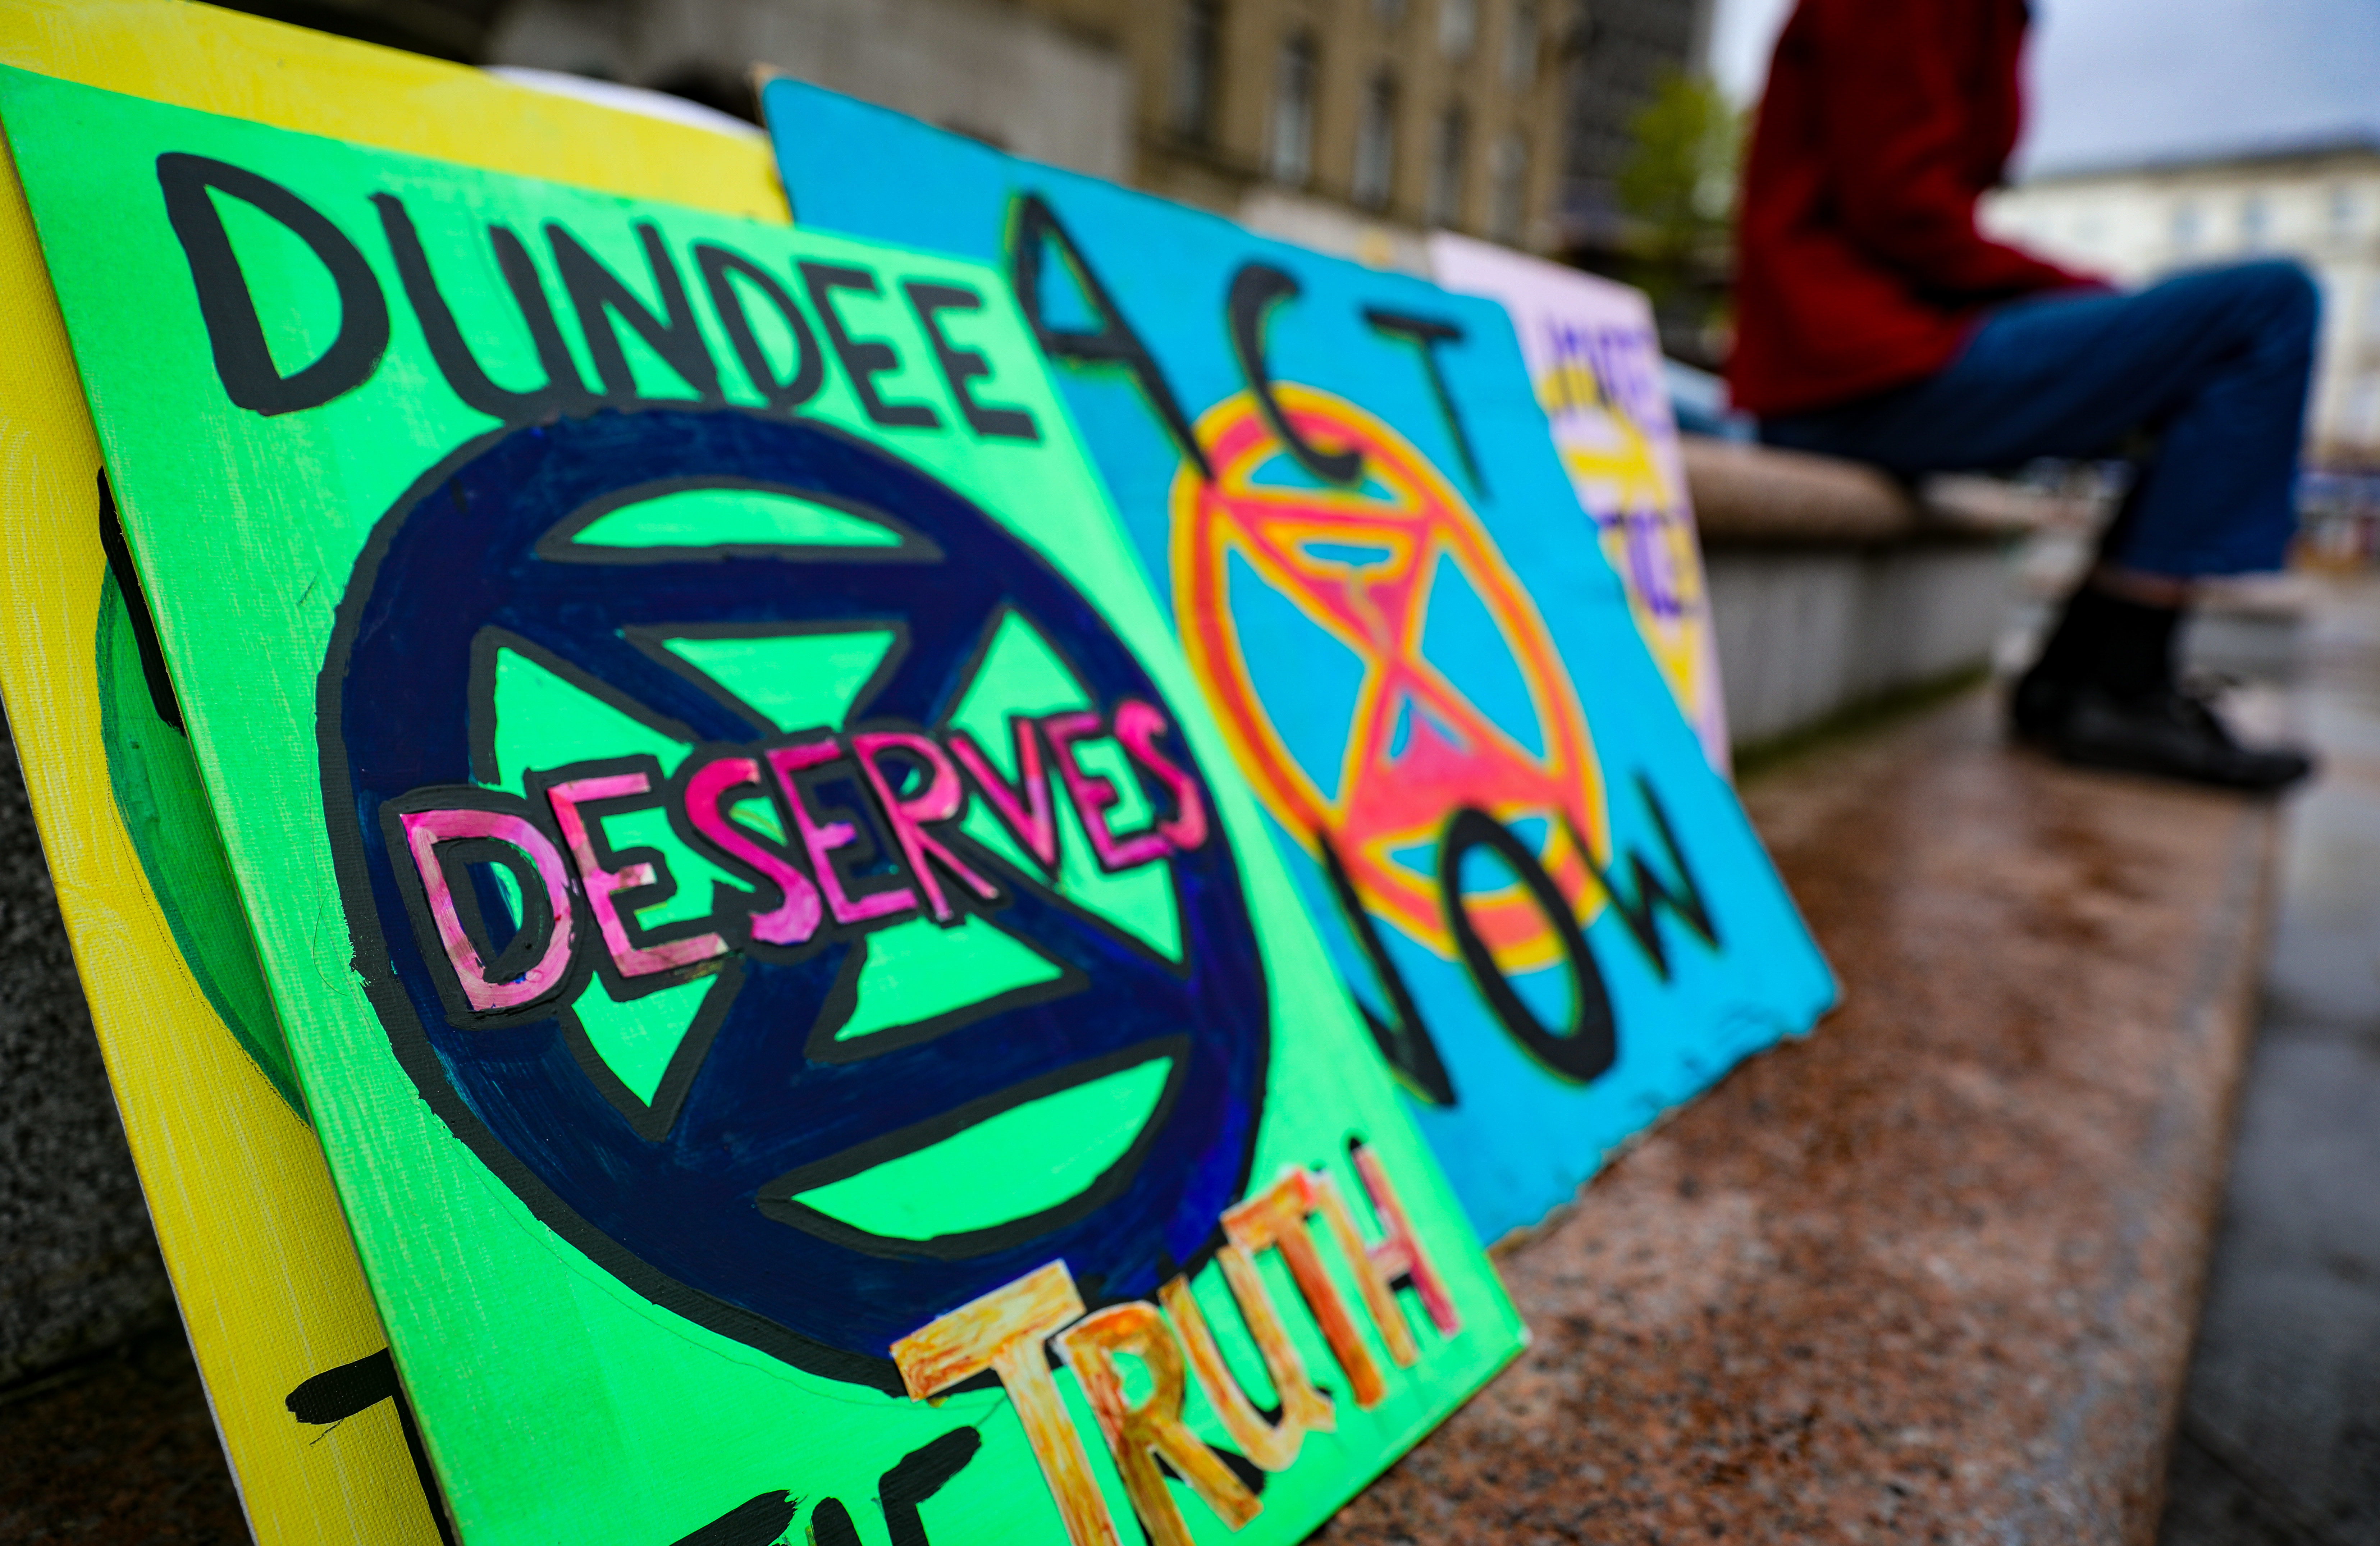 Banners and flags from a climate change protest in Dundee in September 2019.